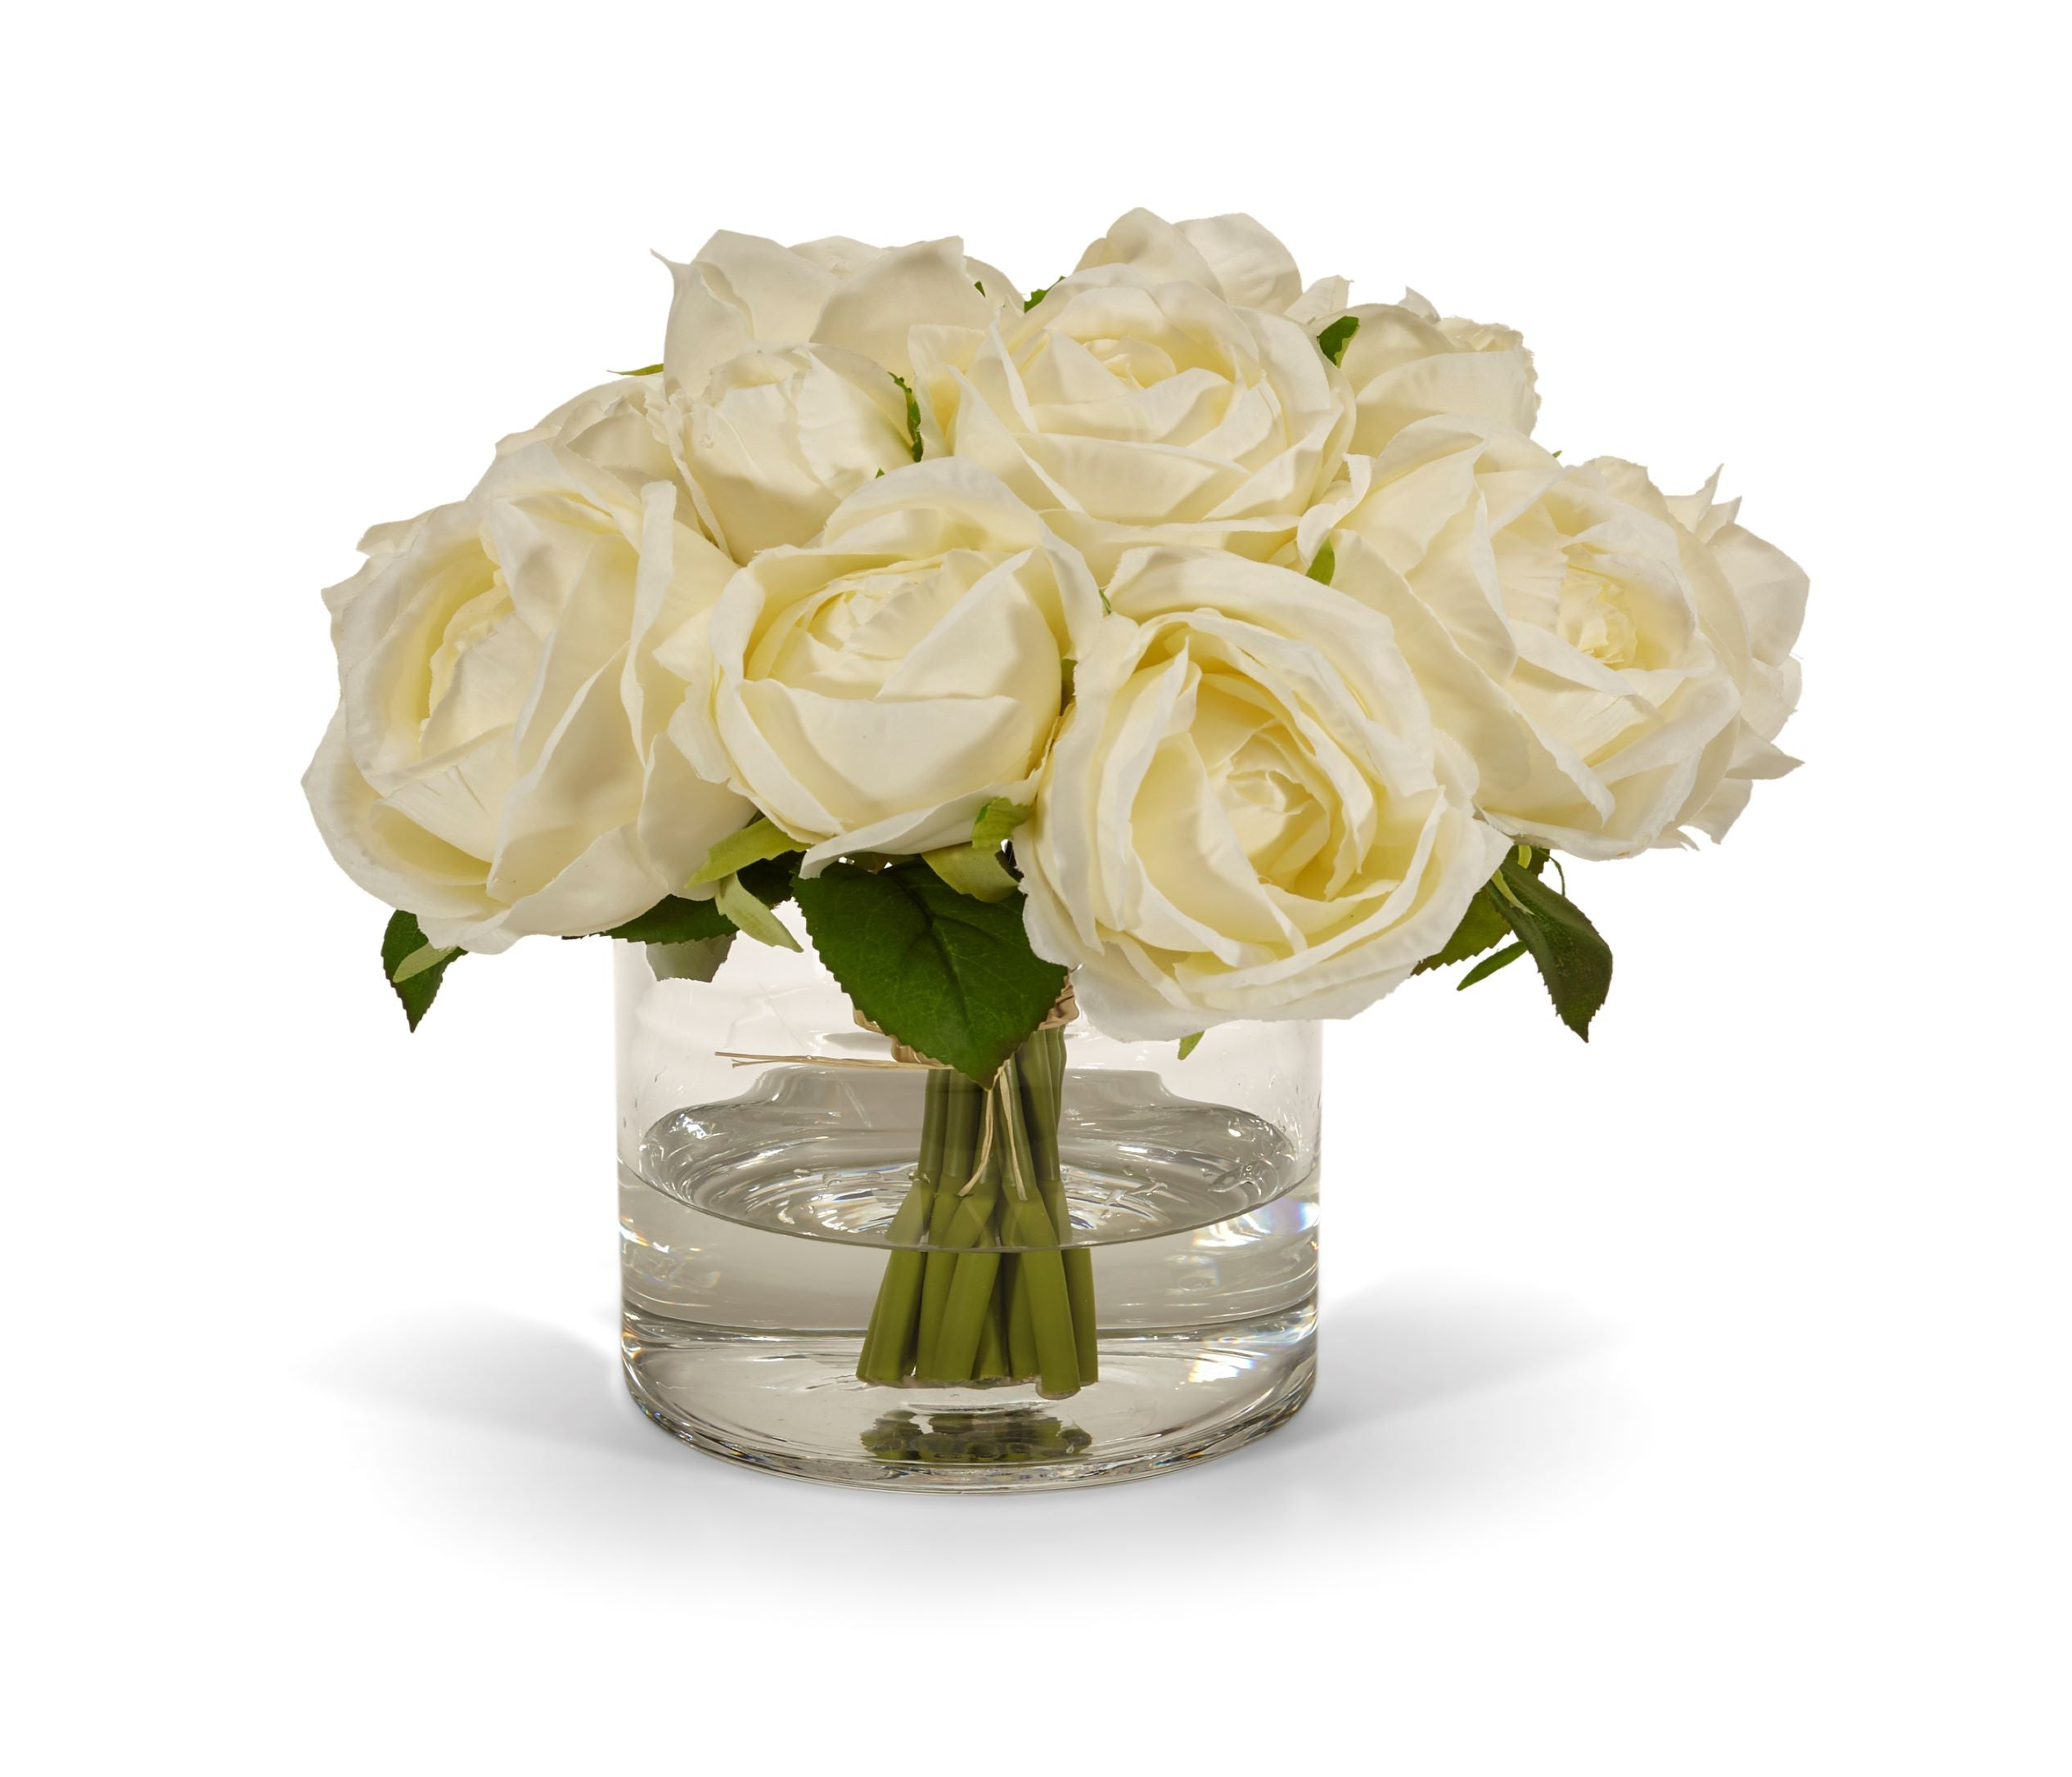 Rose Bouquet in Clear Glass Vase